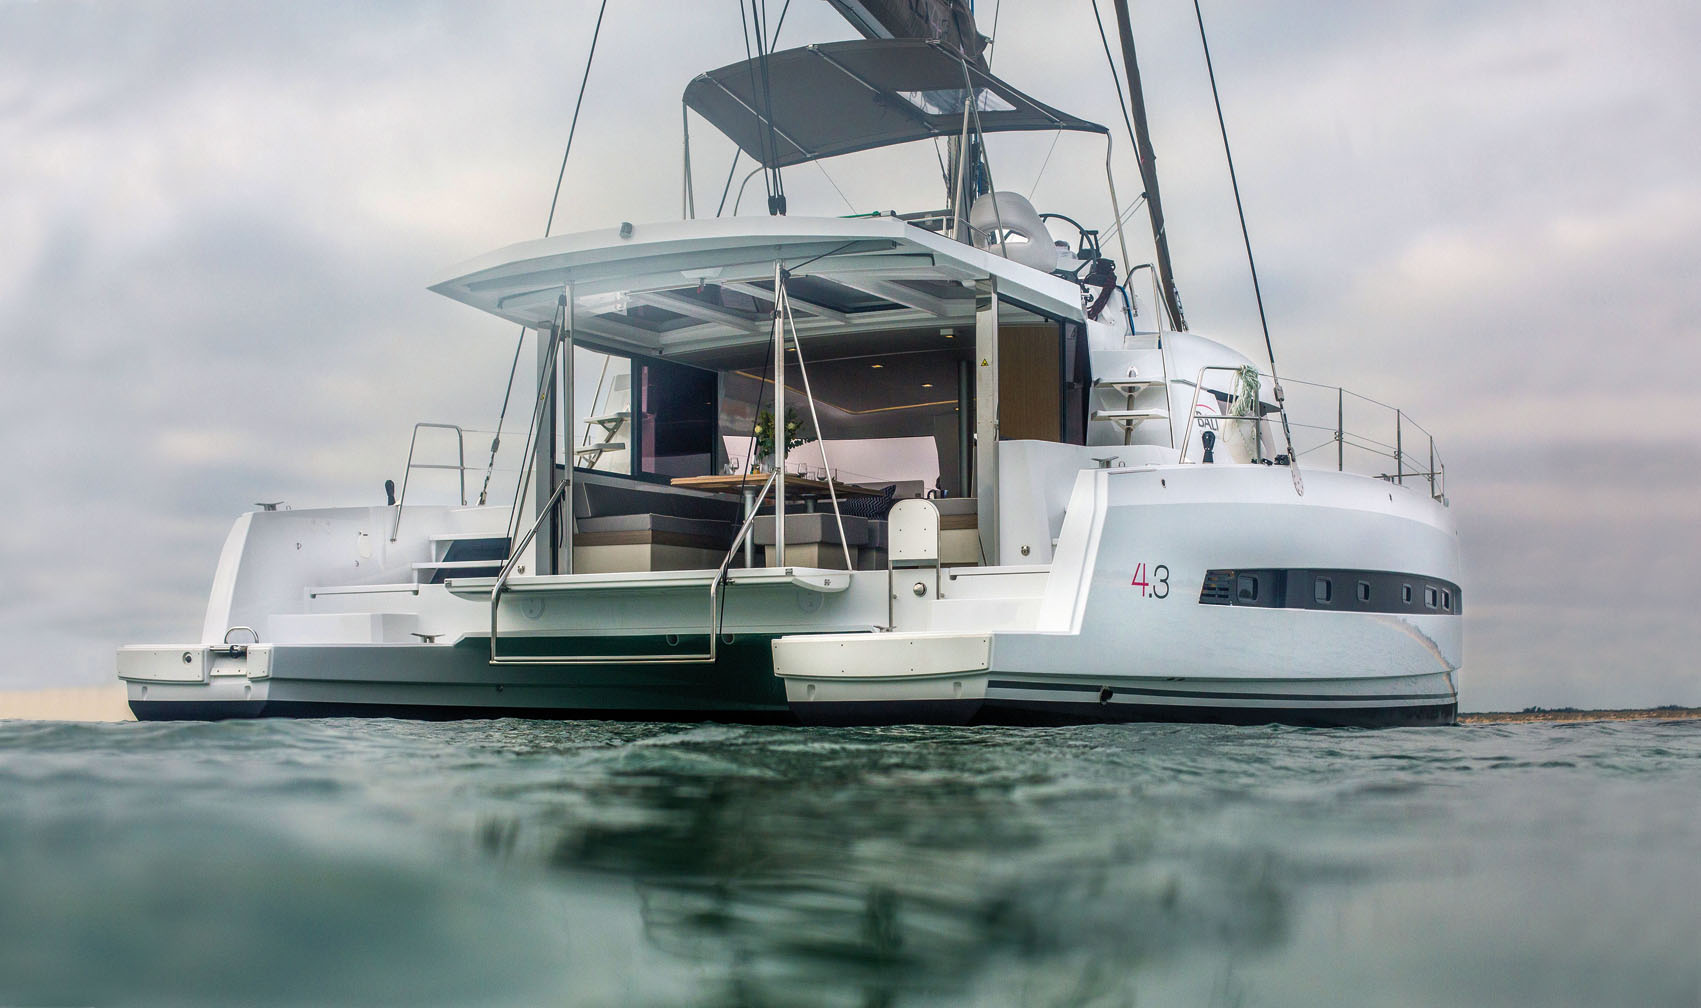 Bali 4.3 Prestige - Catamaran for Charter in Greece